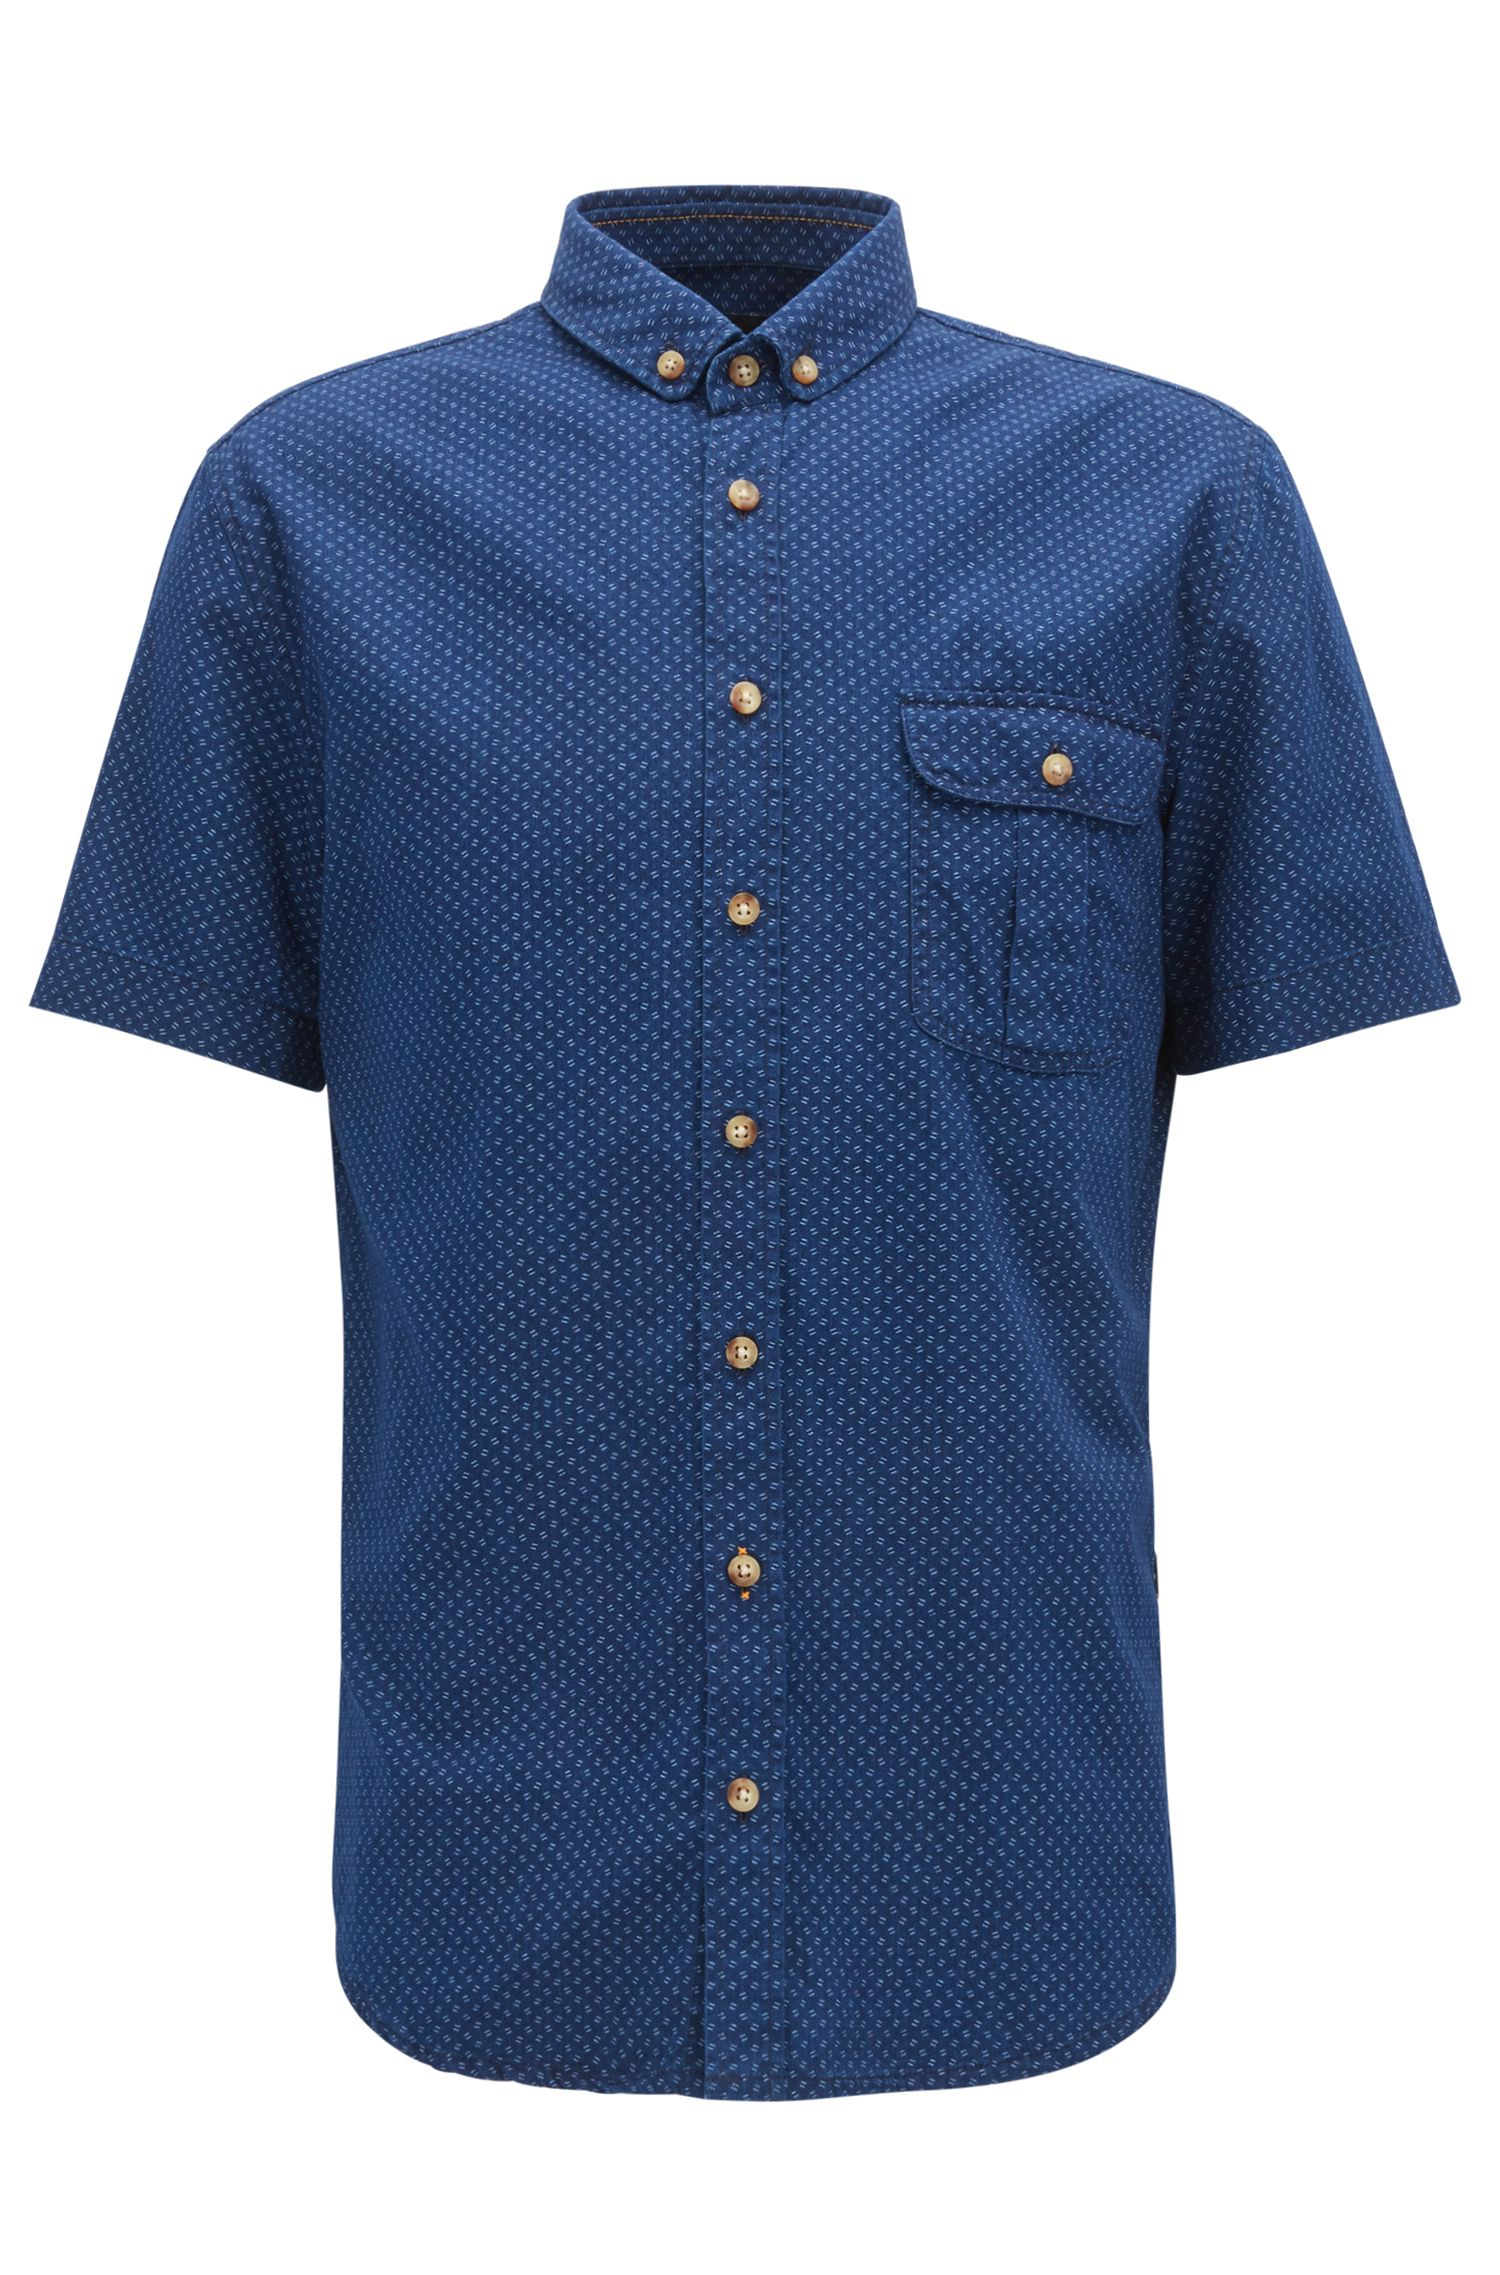 Geo-Patterned Sport Shirt, Slim Fit | Elibre, Dark Blue